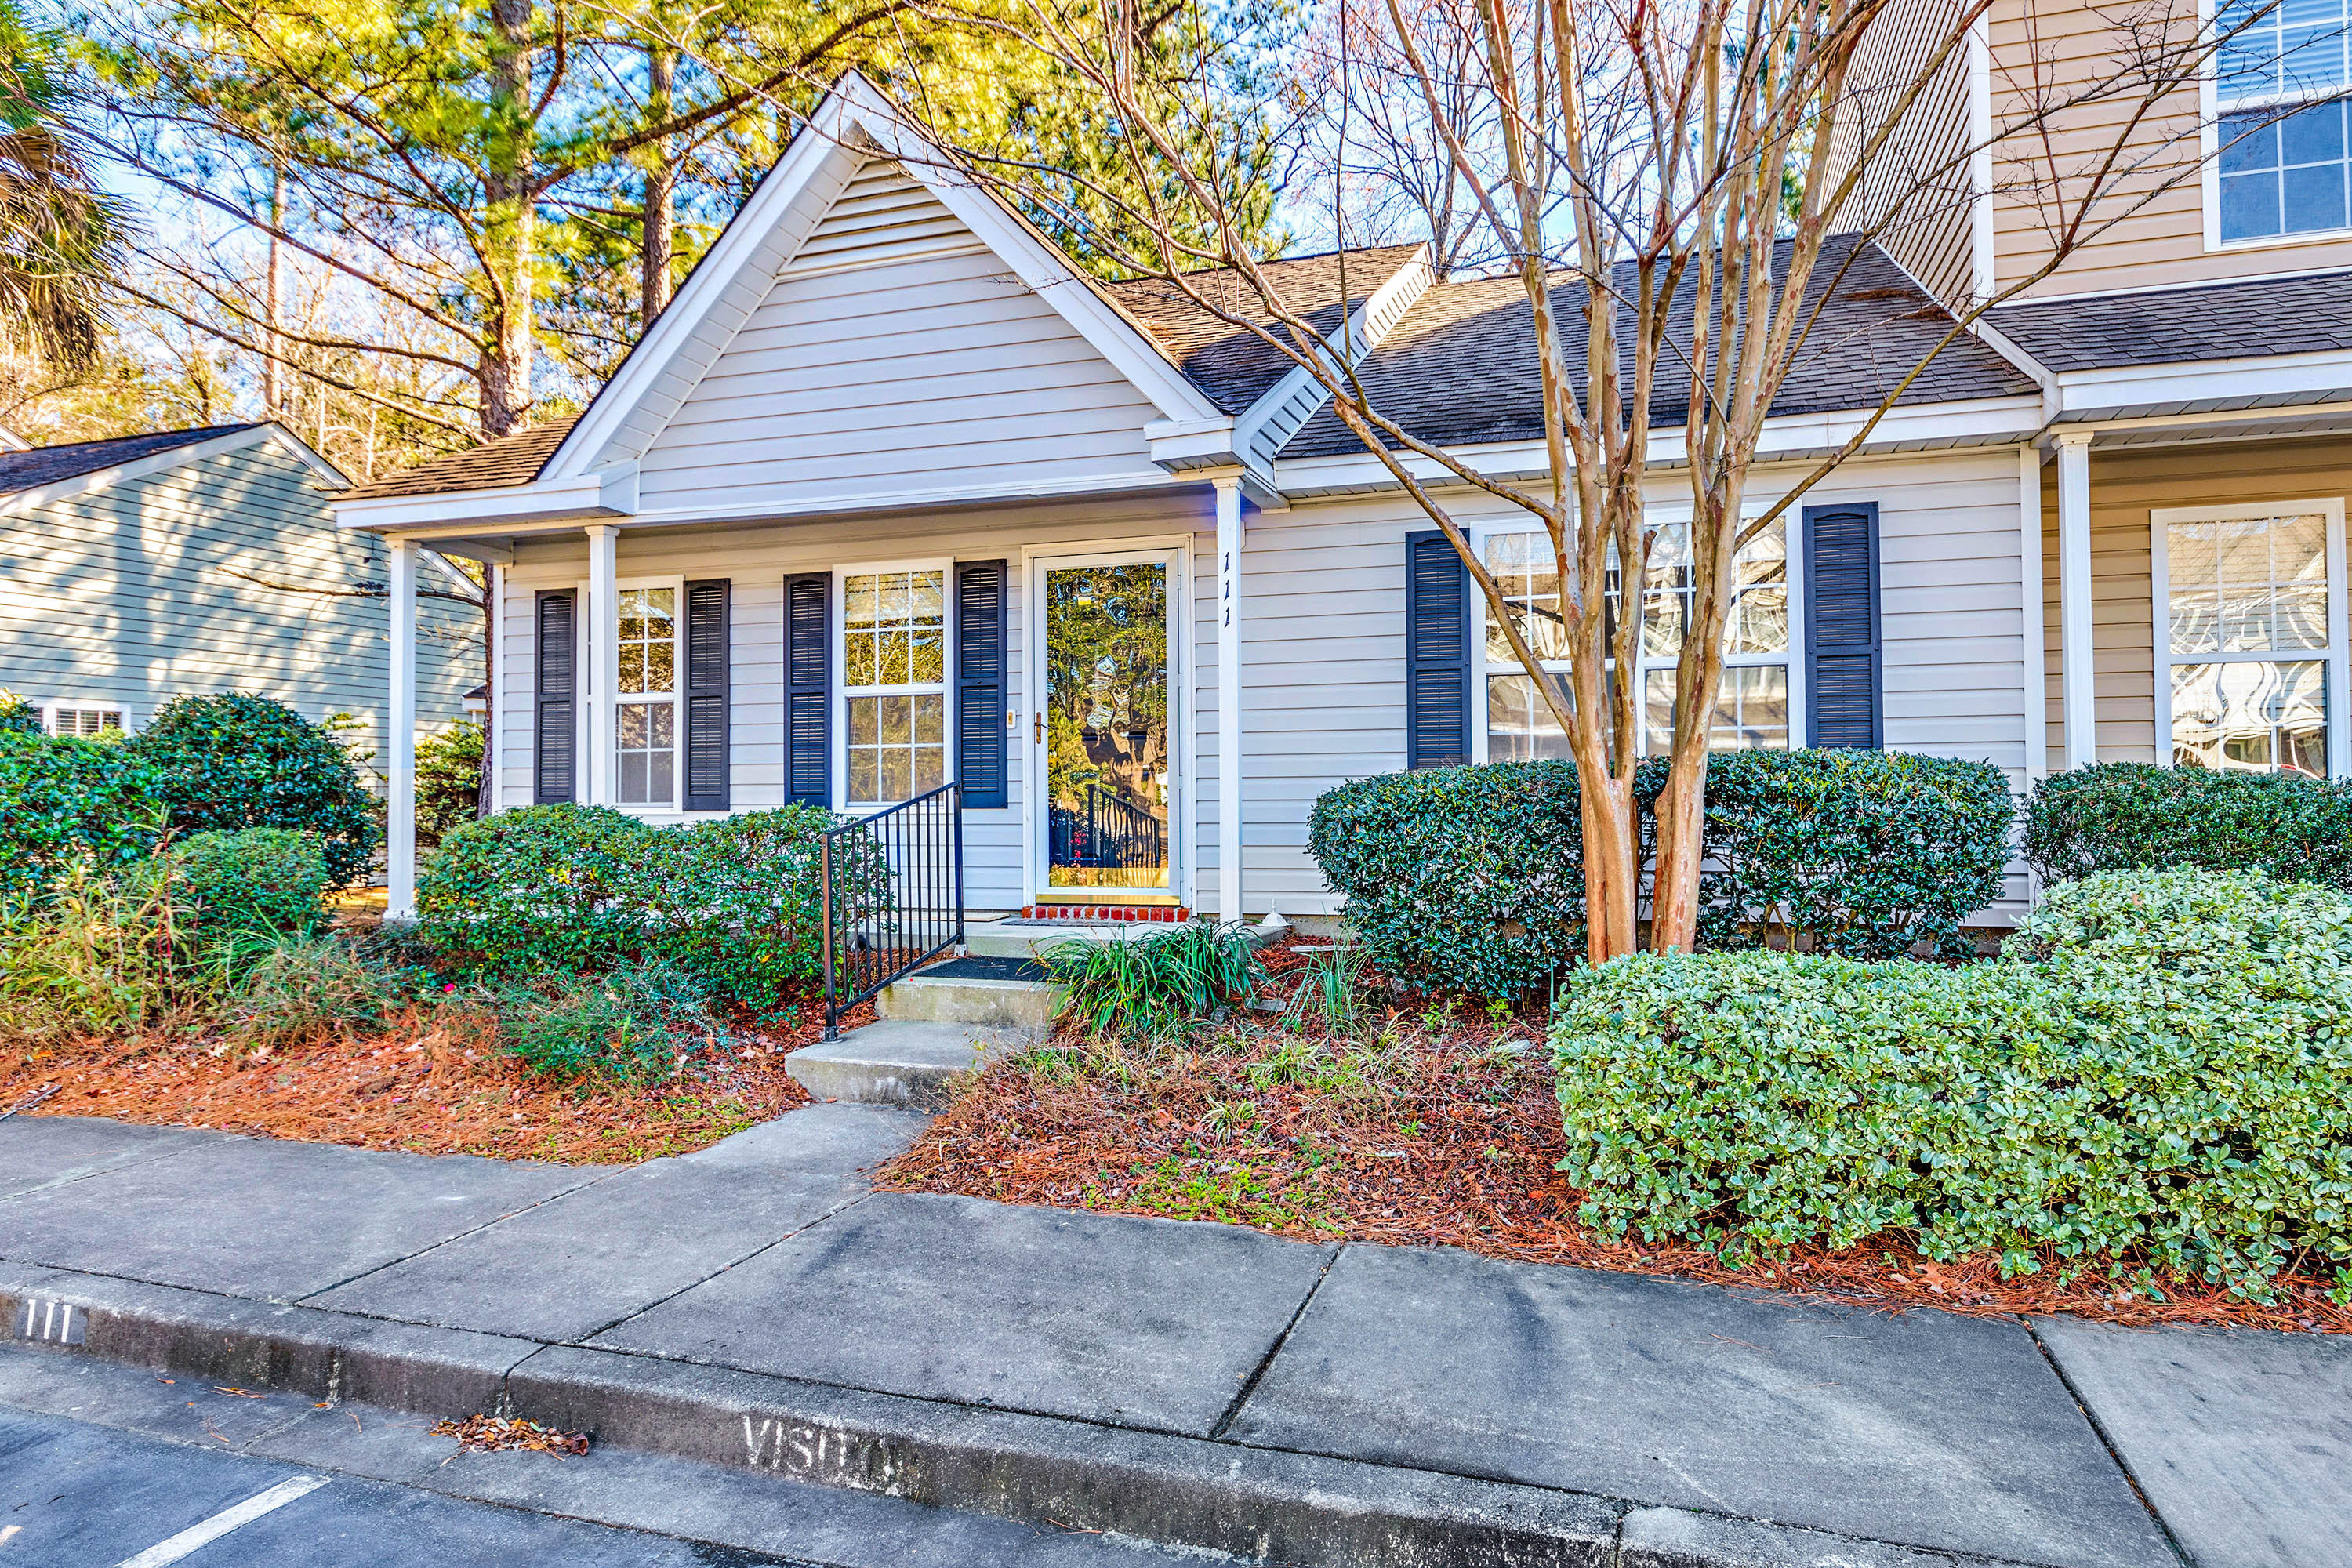 Persimmon Hill Townhouses Homes For Sale - 111 Taylor, Goose Creek, SC - 3